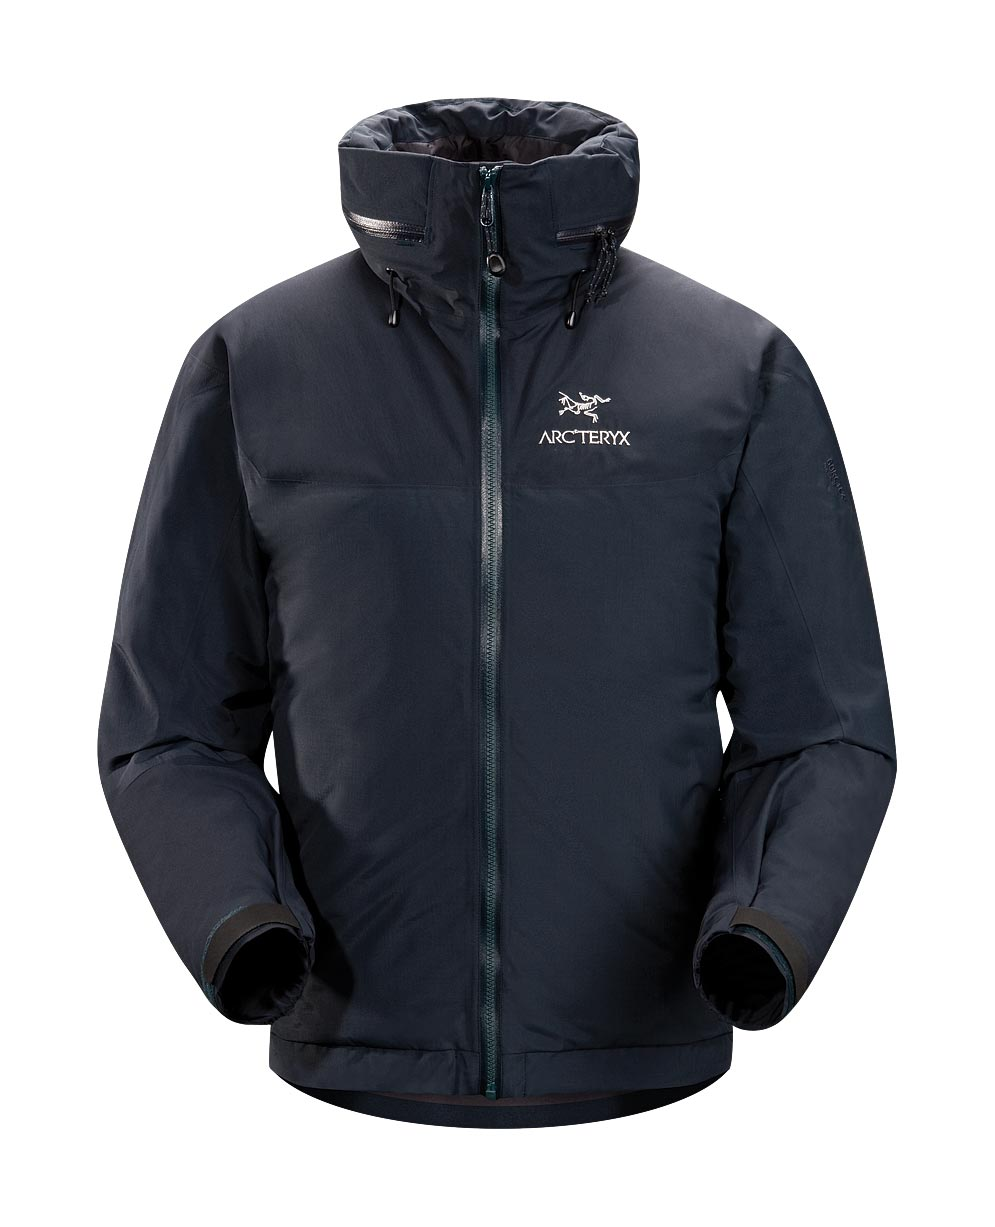 Arcteryx Deep Dusk Fission AR Jacket